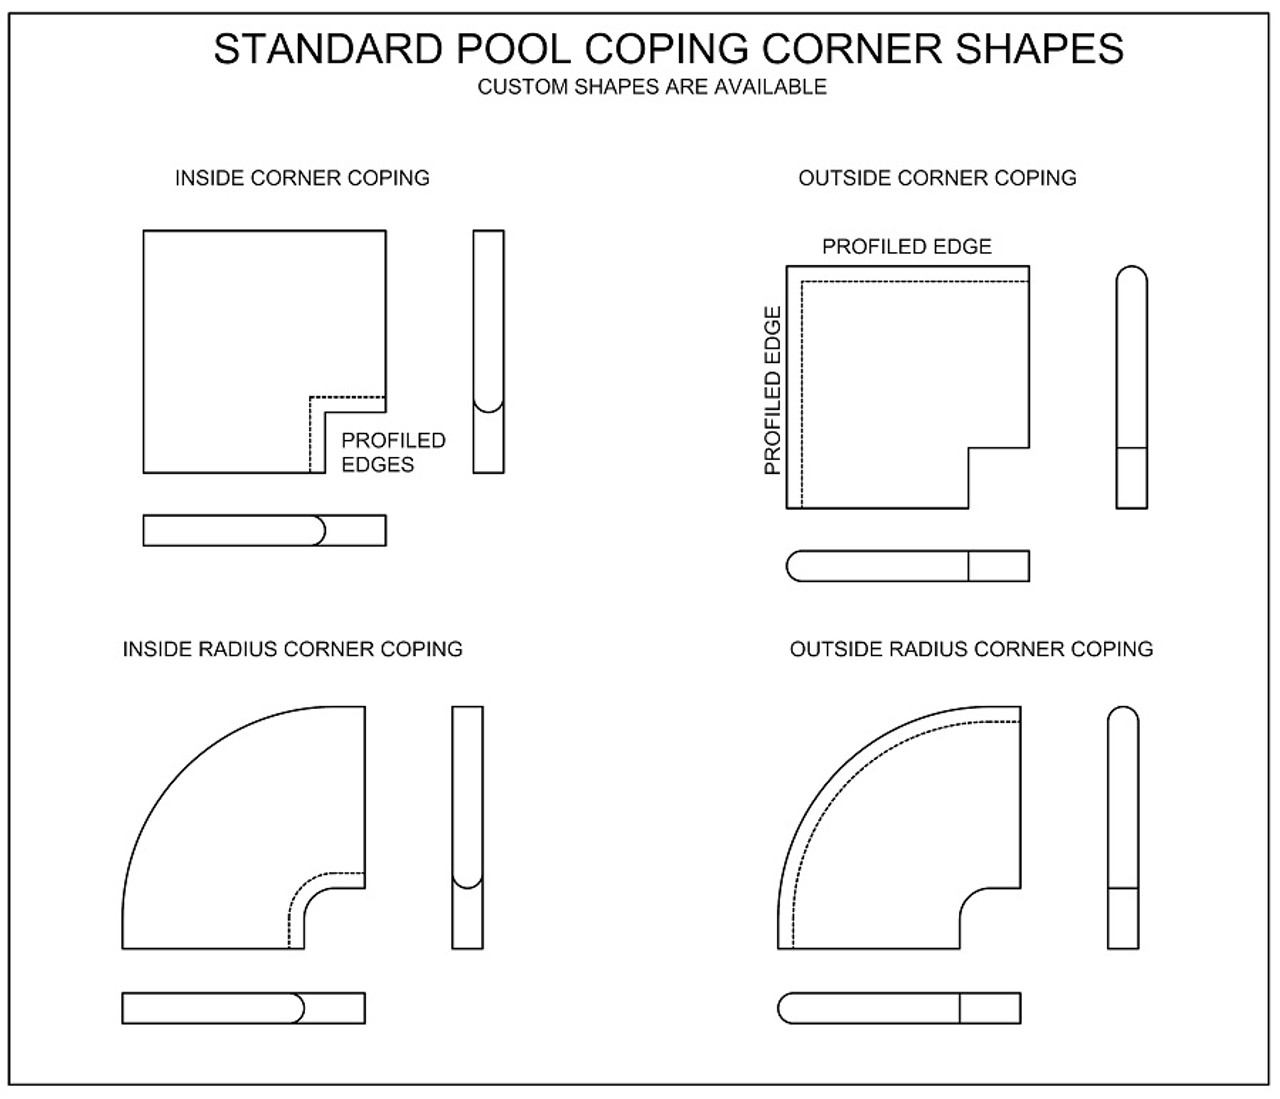 Corner coping shapes